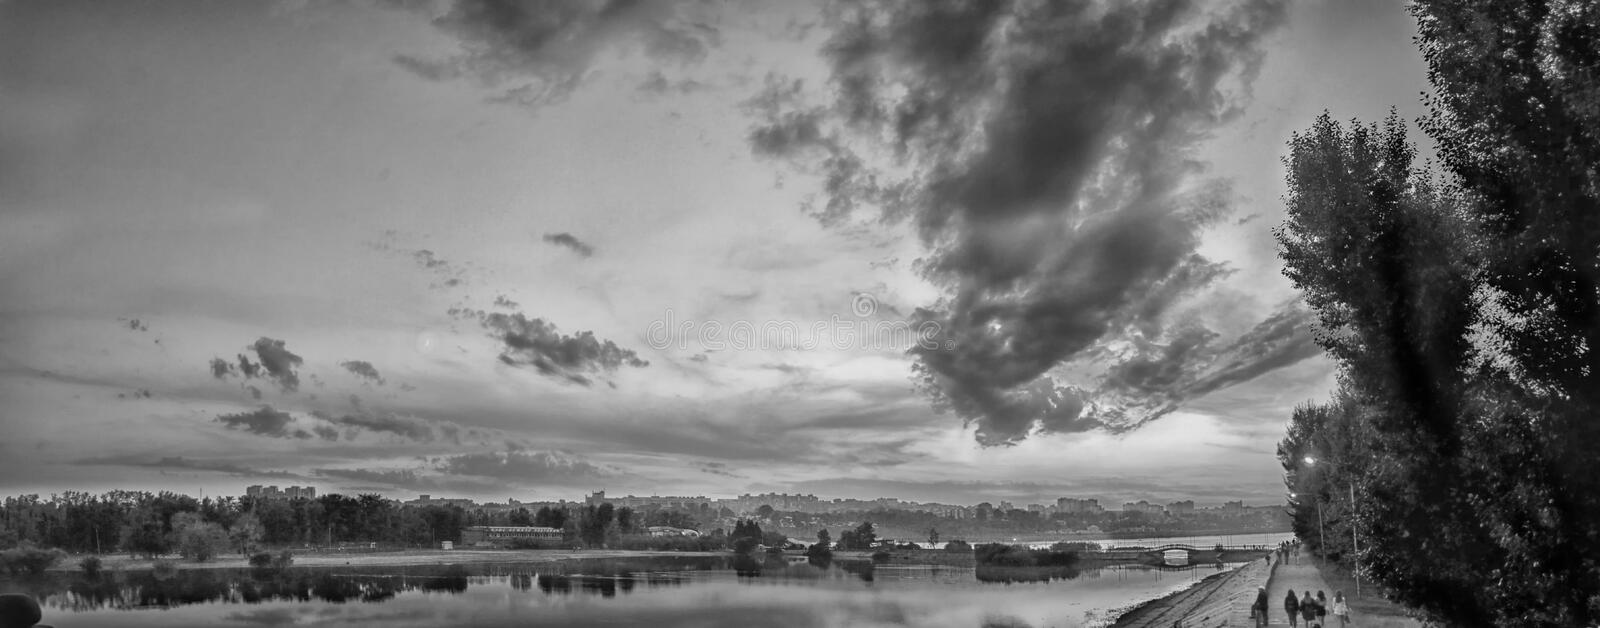 Urban landscape. Embankment of the Angara river at sunset. The moon and the Sun. Russia, Irkutsk. Black and white image. Panorama. Autumn royalty free stock images